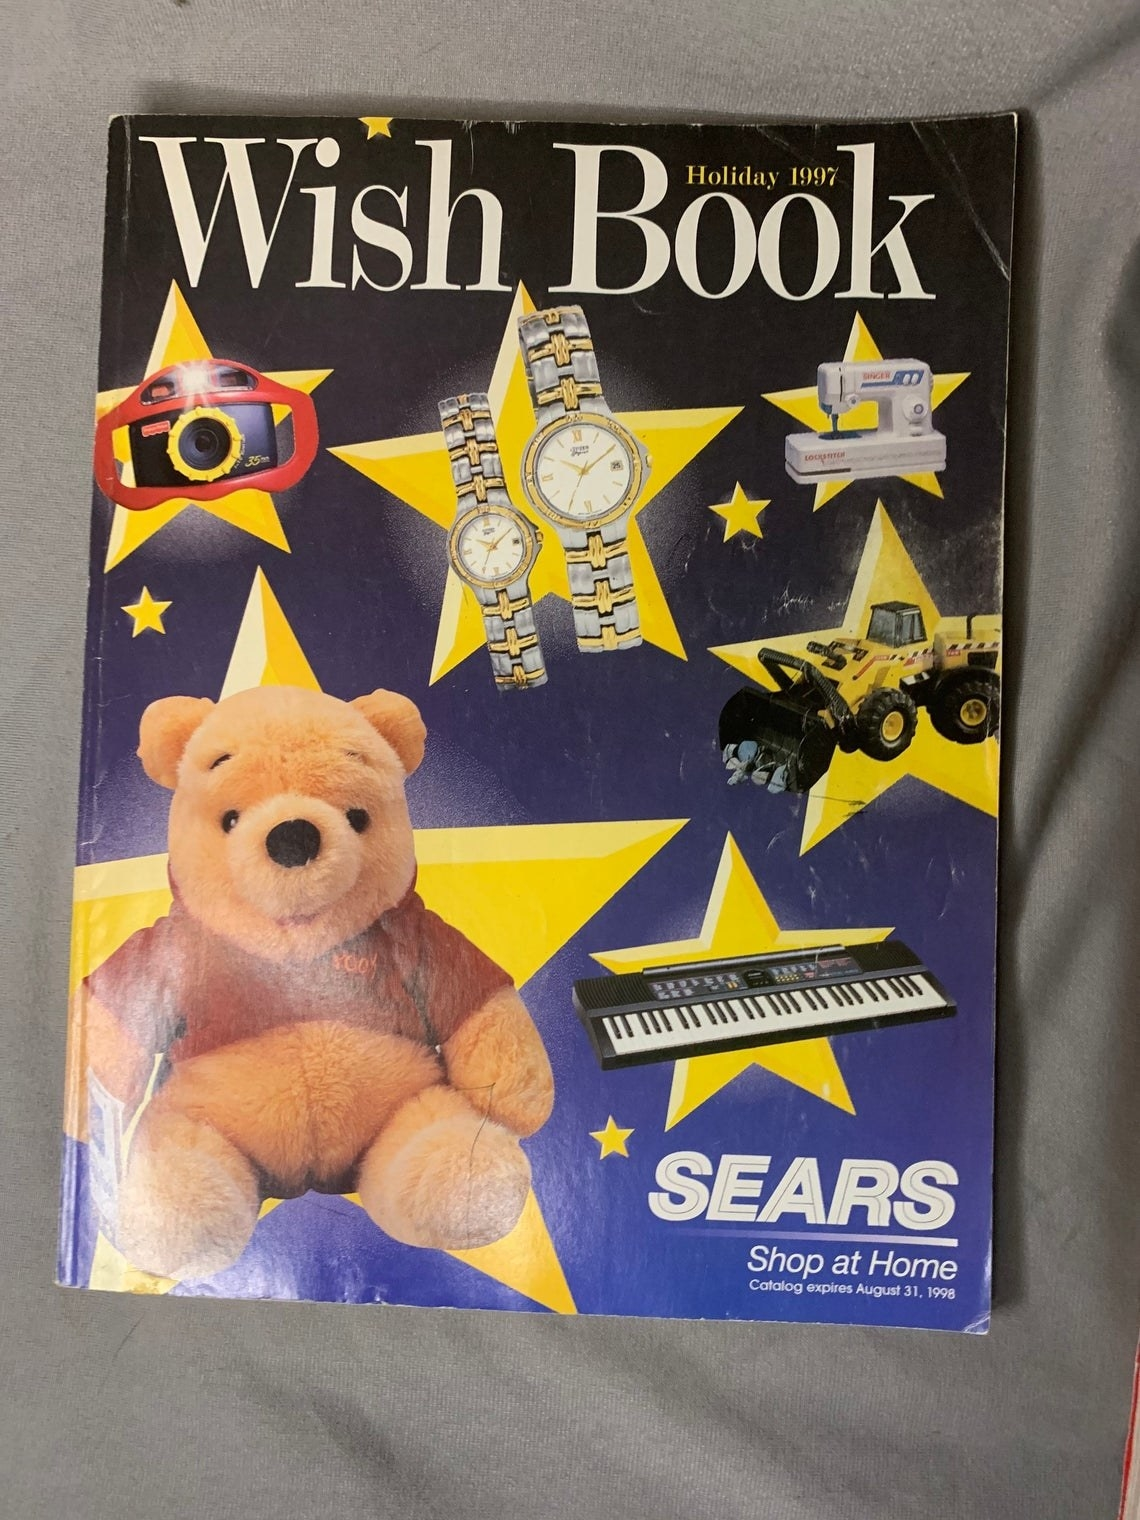 A holiday 1997 Wish Book with a Winnie the Pooh stuffed animal and various other items on the cover